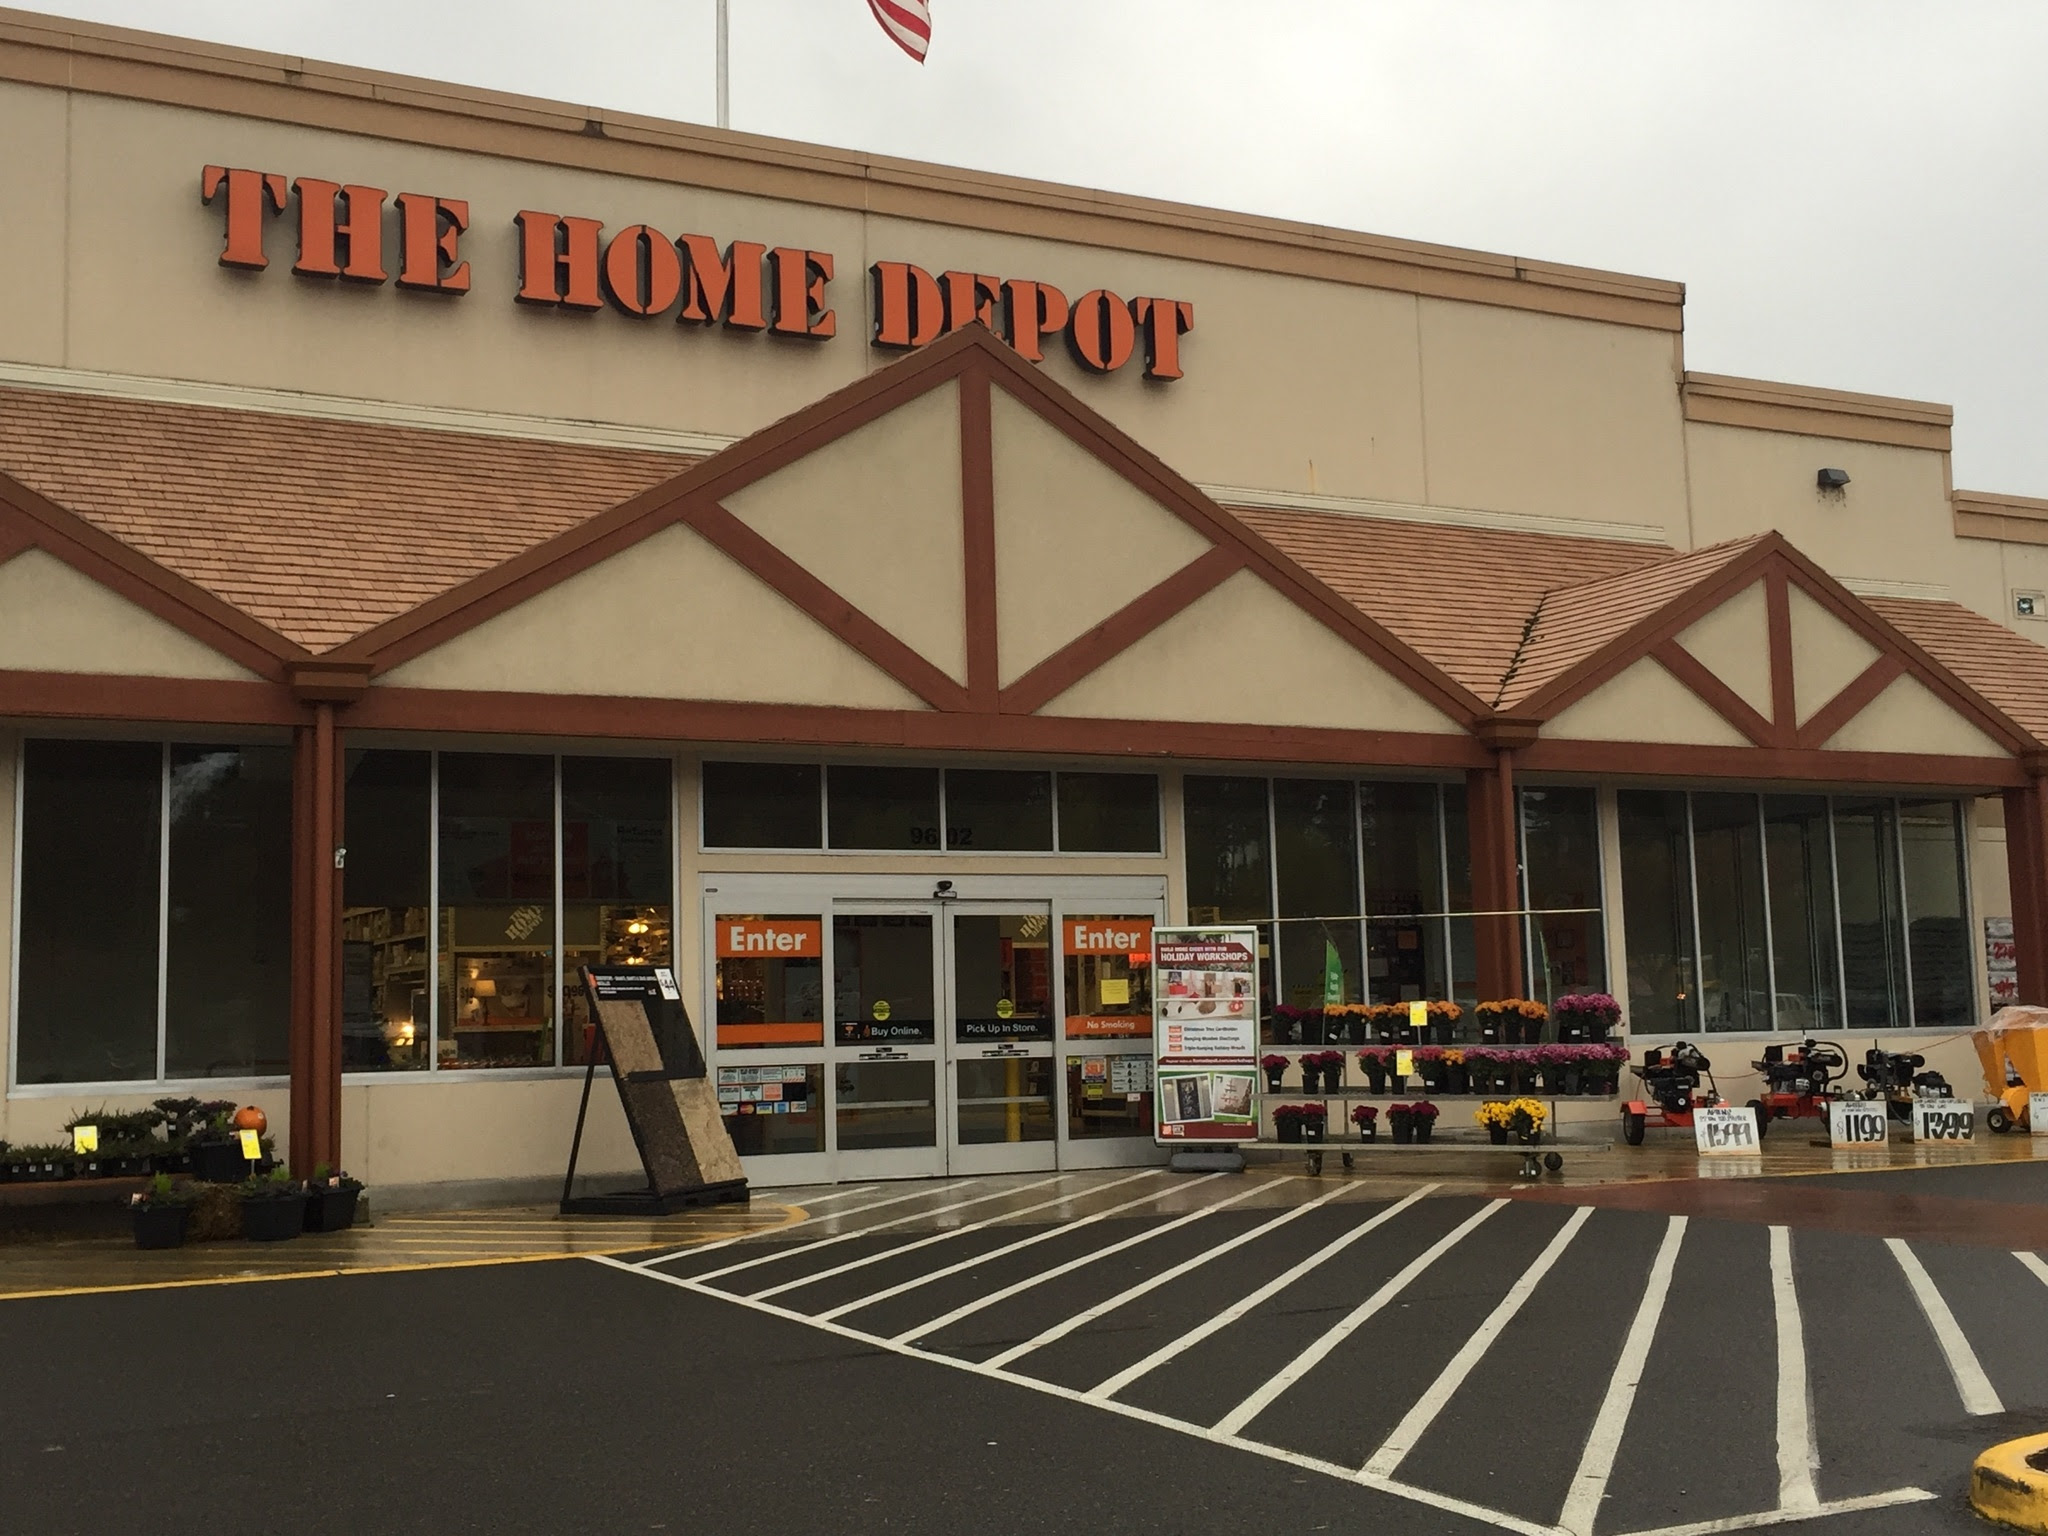 The Home Depot 9602 214th Ave East Bonney Lake WA Home Depot MapQuest